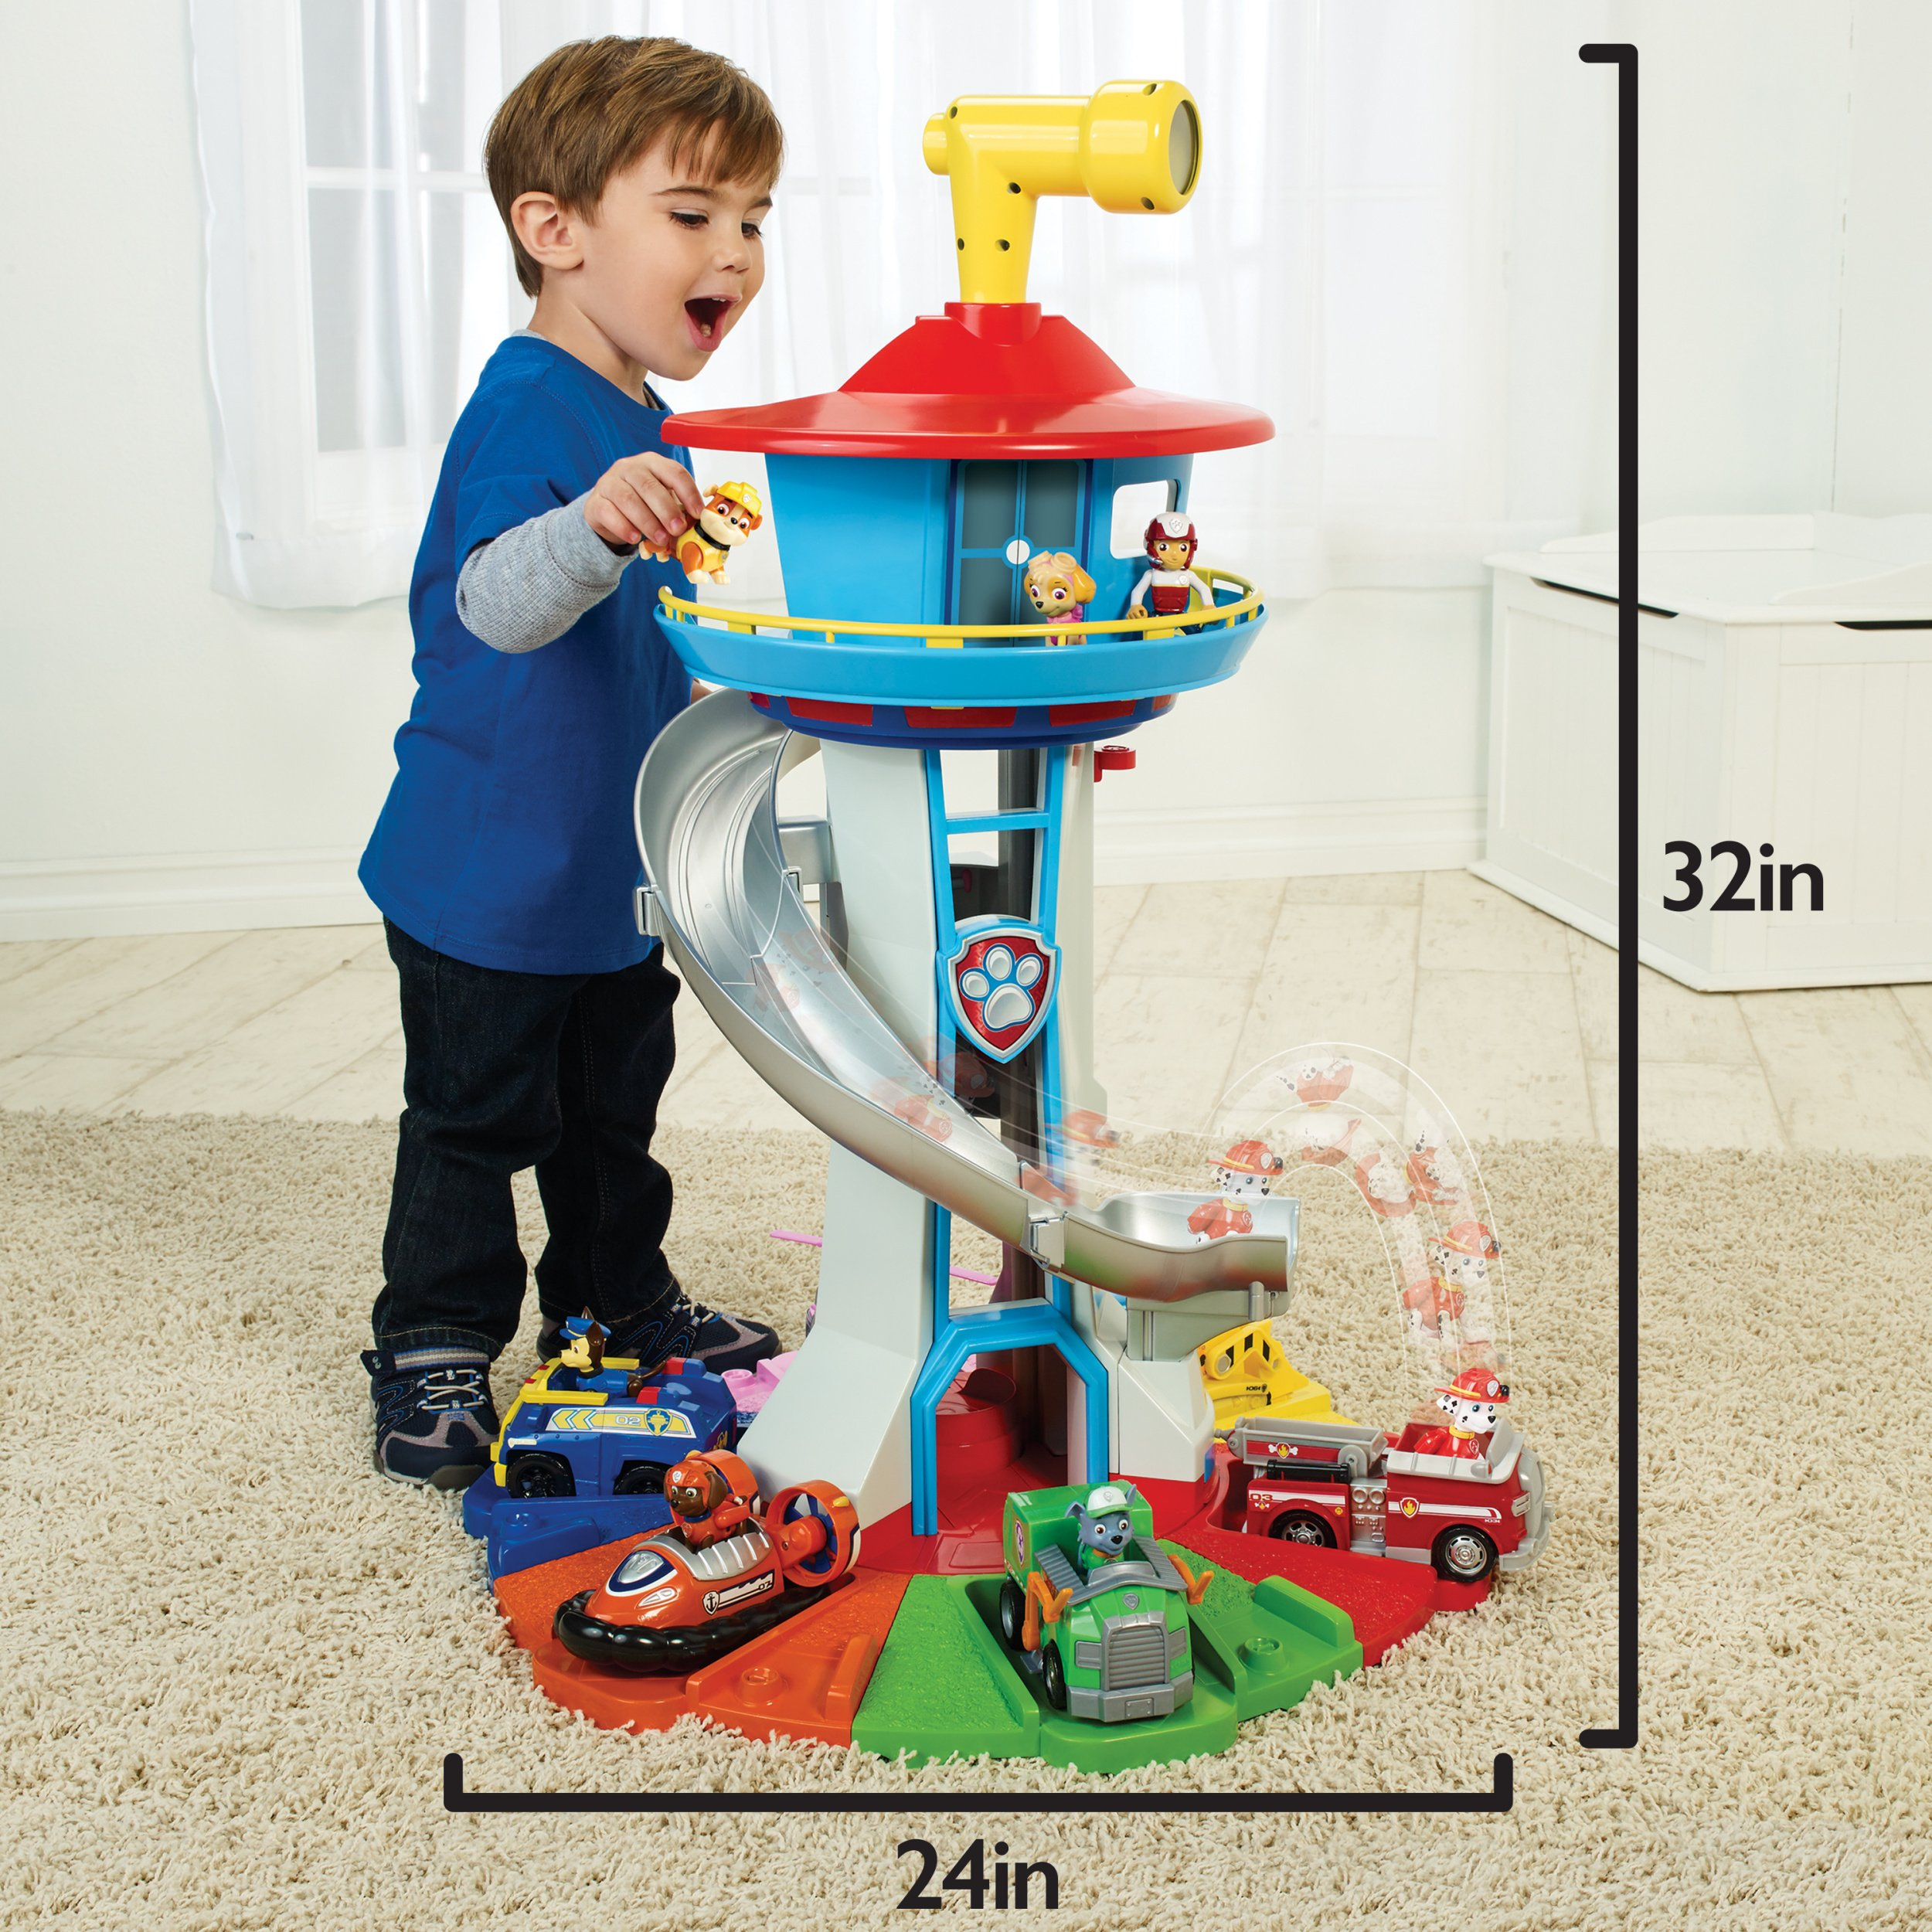 PAW Patrol My Size Lookout Tower with Exclusive Vehicle, Rotating Periscope & Lights & Sounds by Nickelodeon (Image #3)